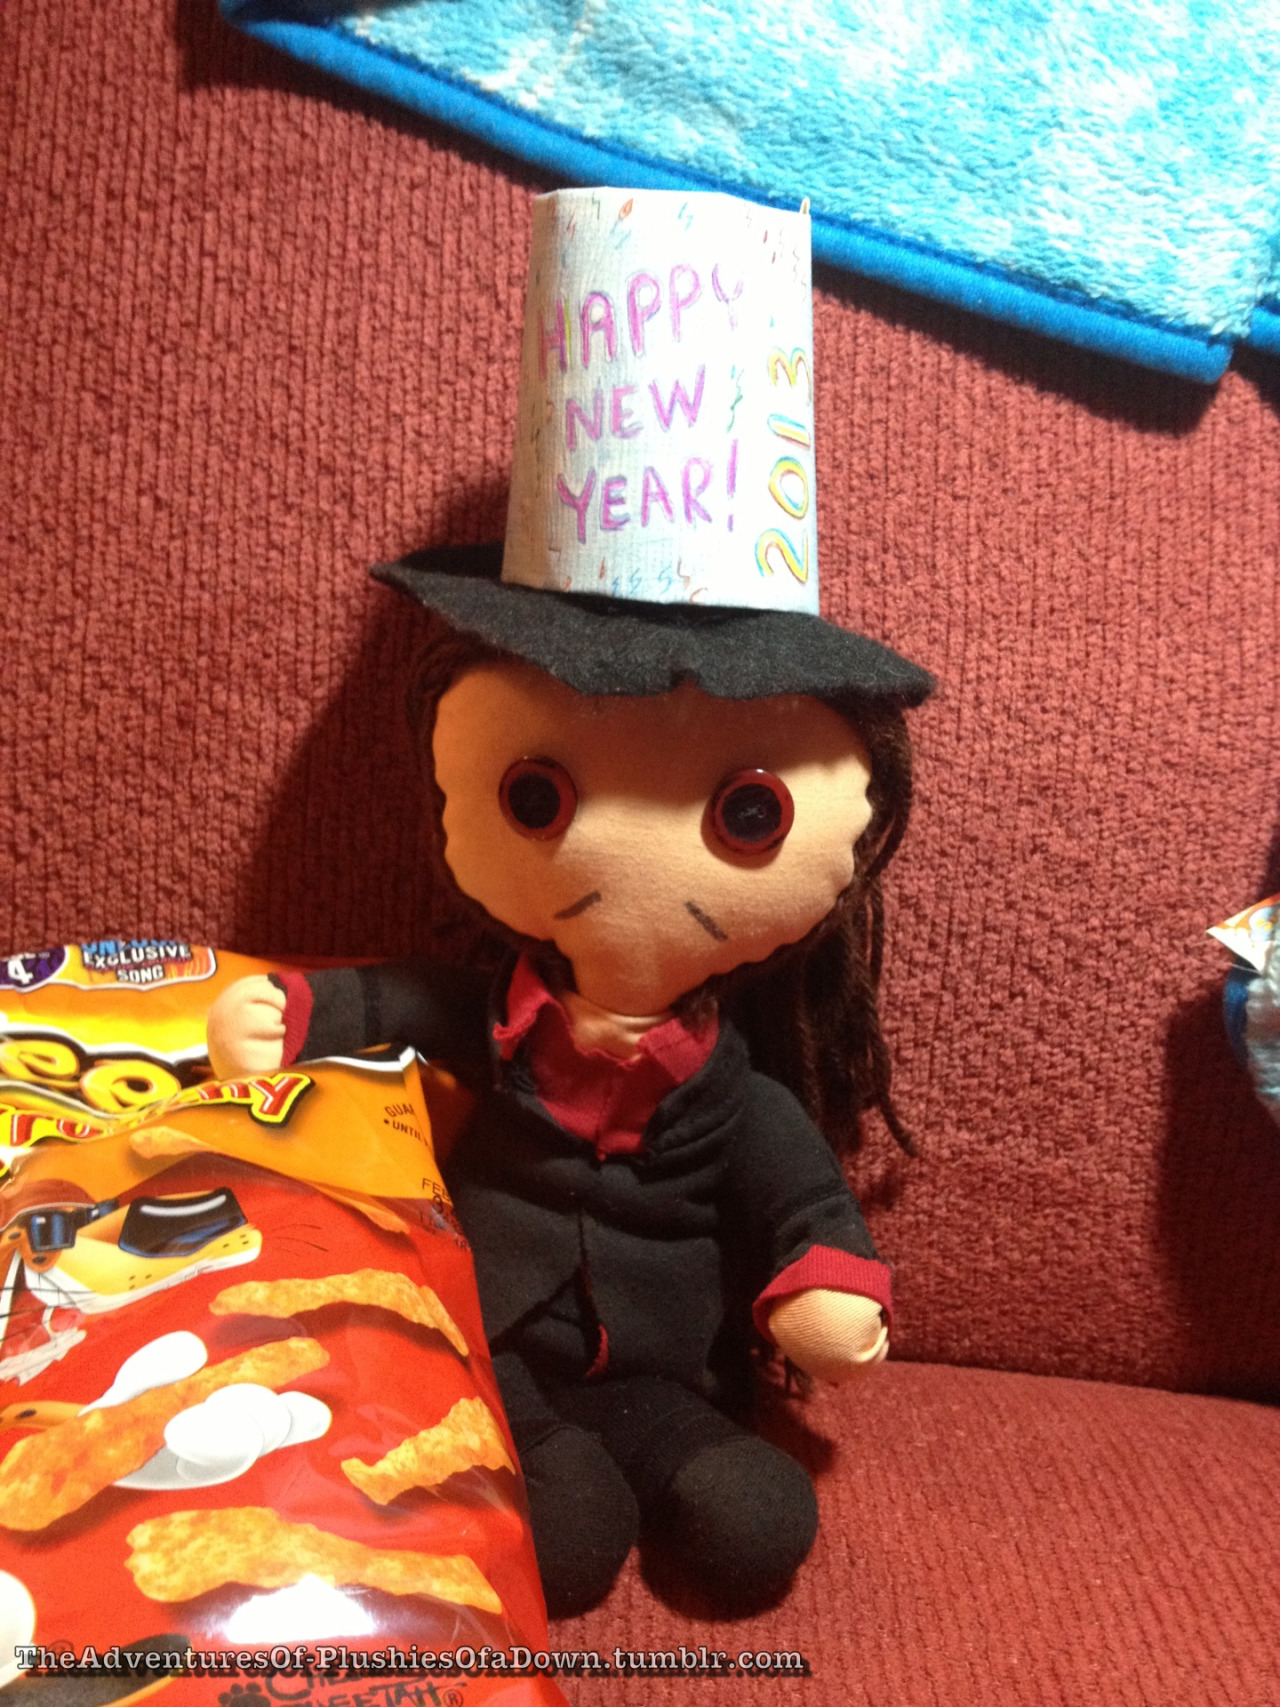 Li'l D has his snacks and his party hat and he's ready to celebrate tonight ^_^